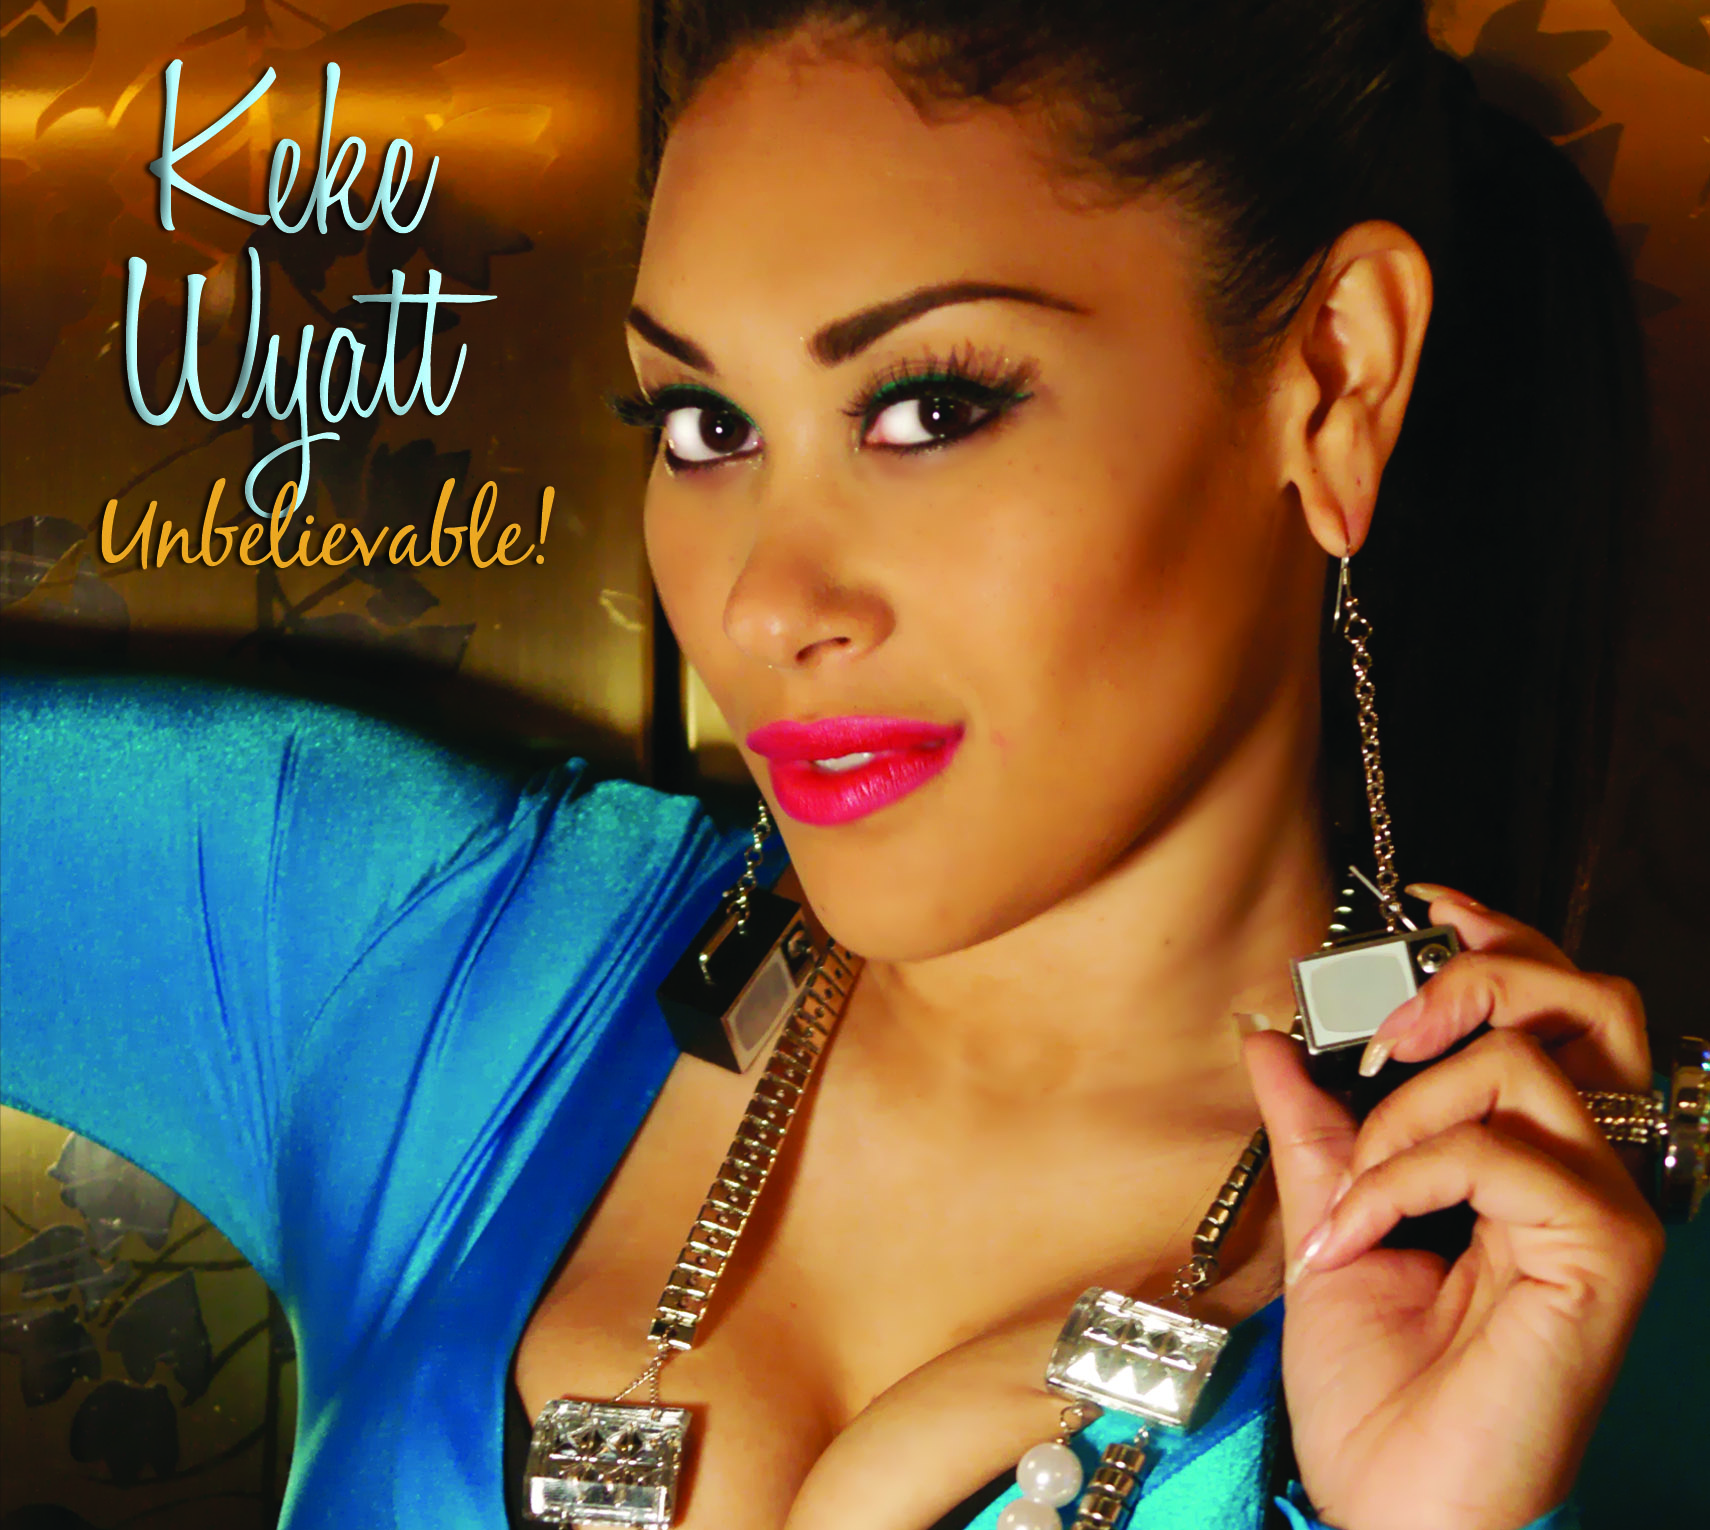 Keke Wyatt - Unbelievable!